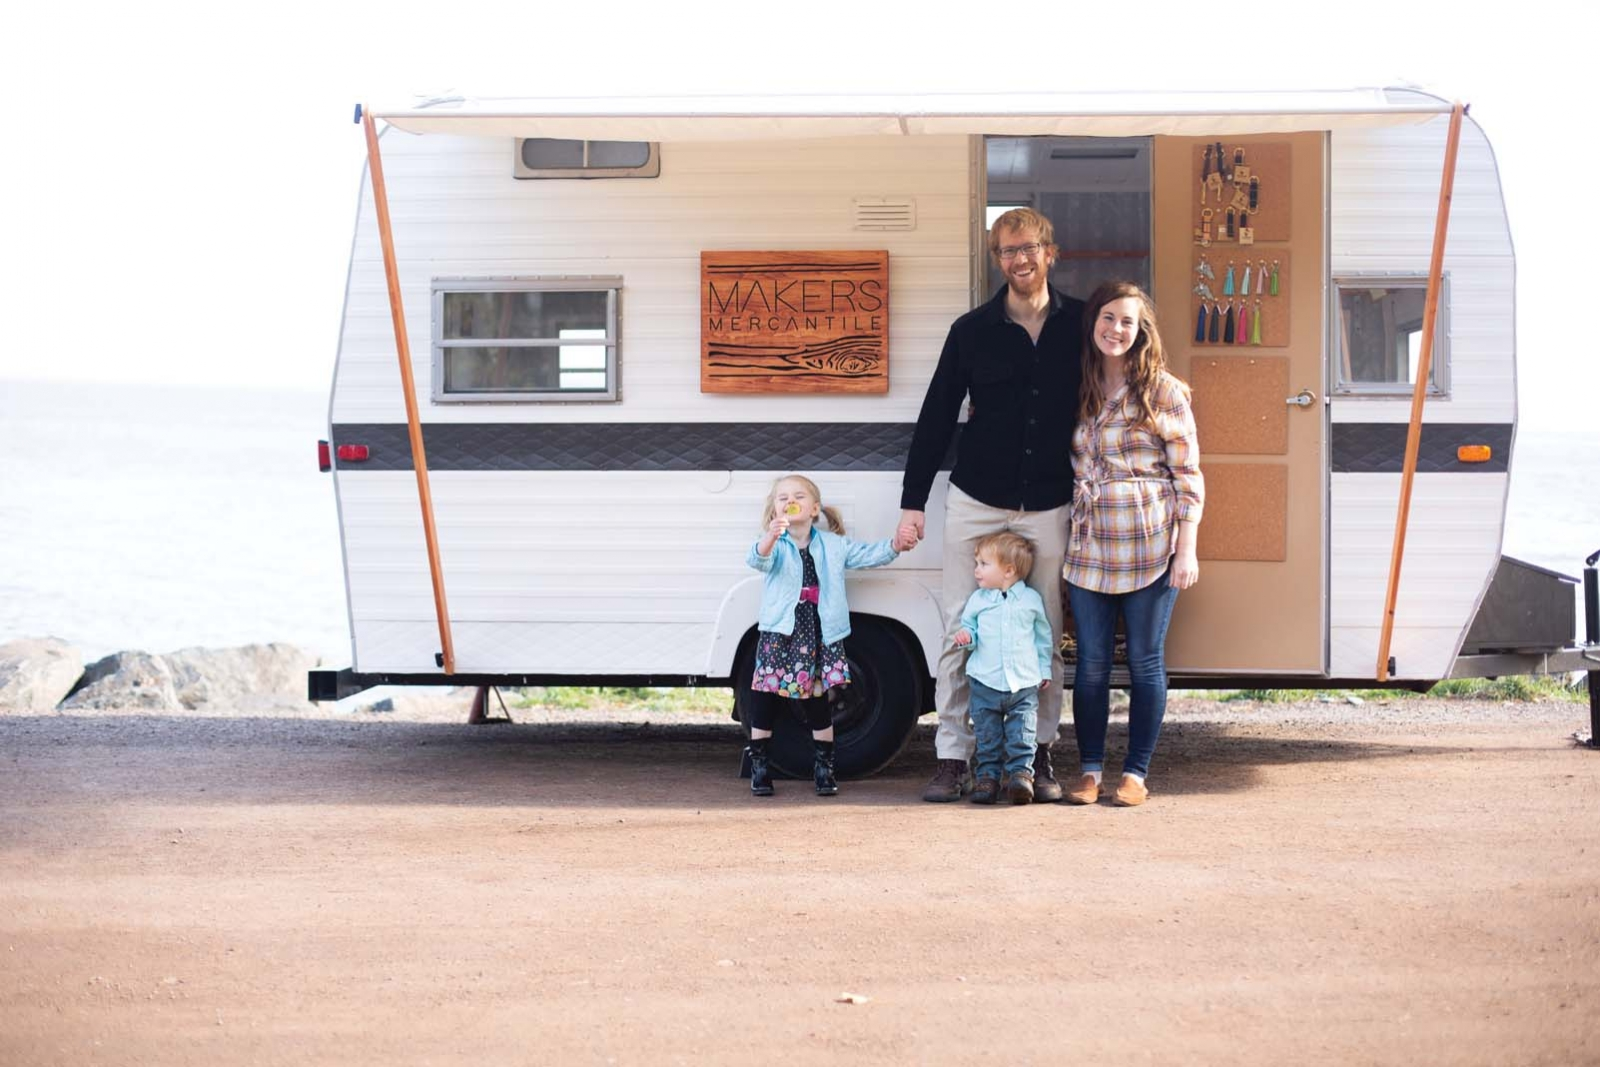 Makers Mercantile proprietors Sara and Scott Clifton outside a camper.